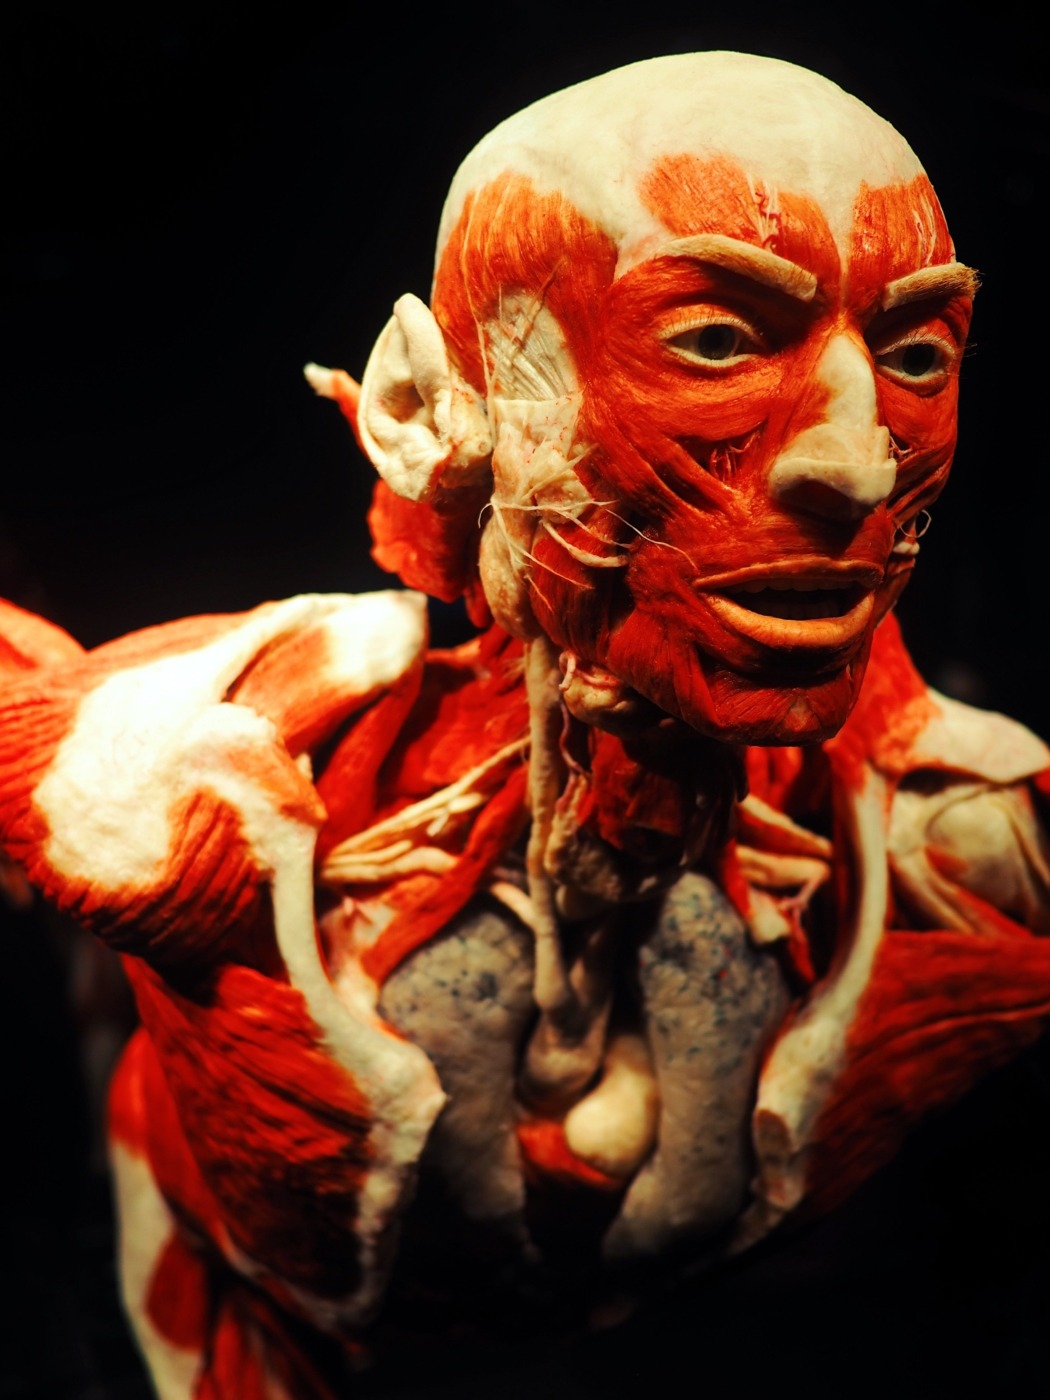 Body Worlds Is Putting Real Human Bodies On Display A Step Too Far